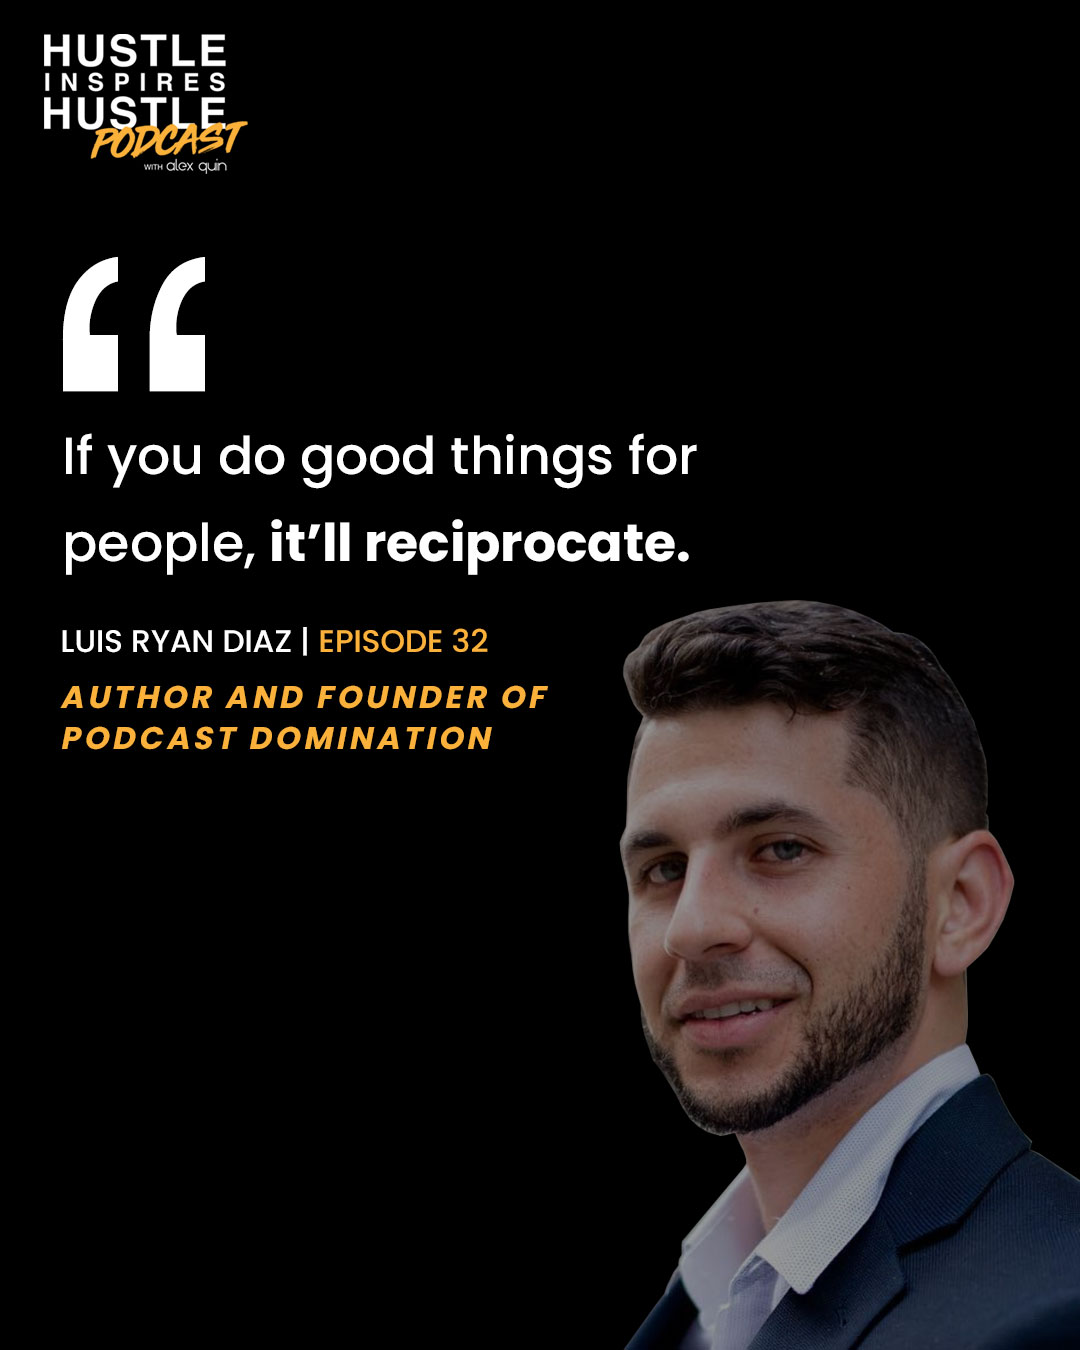 Luis Ryan Diaz & Alex Quin on Hustle Inspires Hustle Podcast